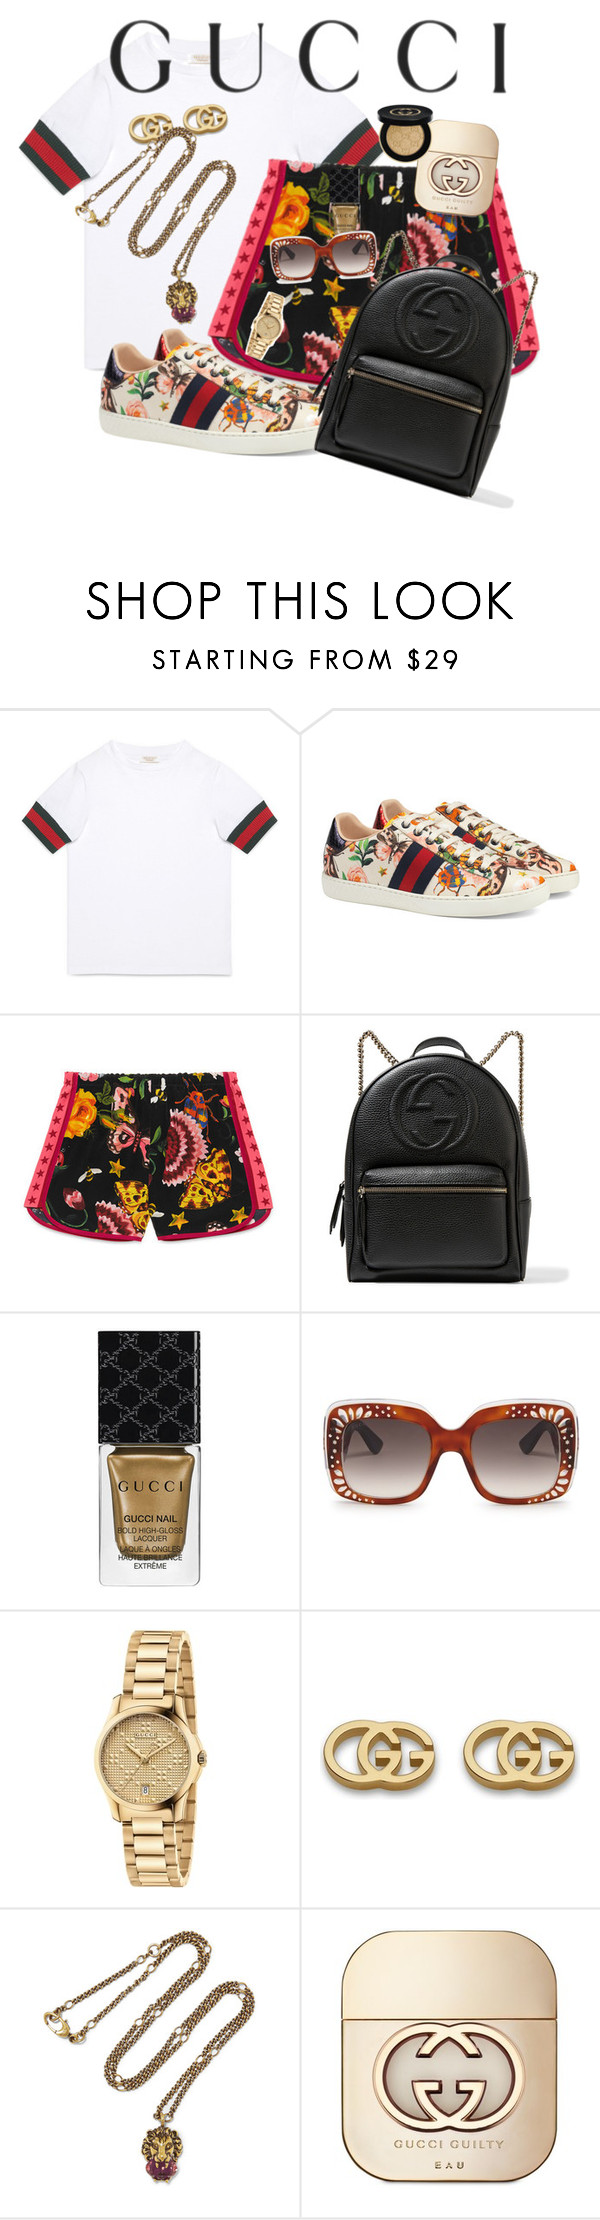 """Presenting the Gucci Garden Exclusive Collection: Contest Entry"" by tiffany-olivares ❤ liked on Polyvore featuring Gucci and gucci"